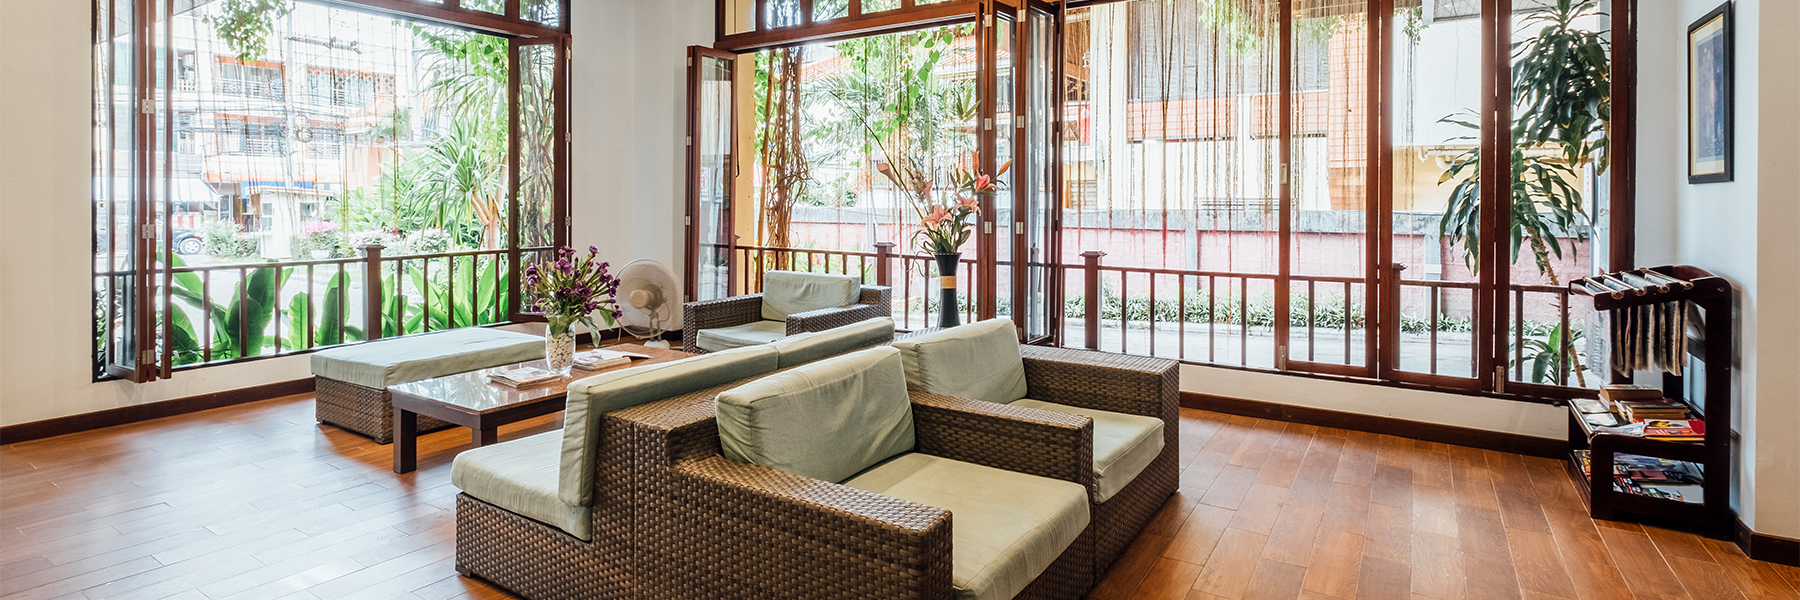 List Sotheby's International Realty Thailand Luxury Homes for Sale